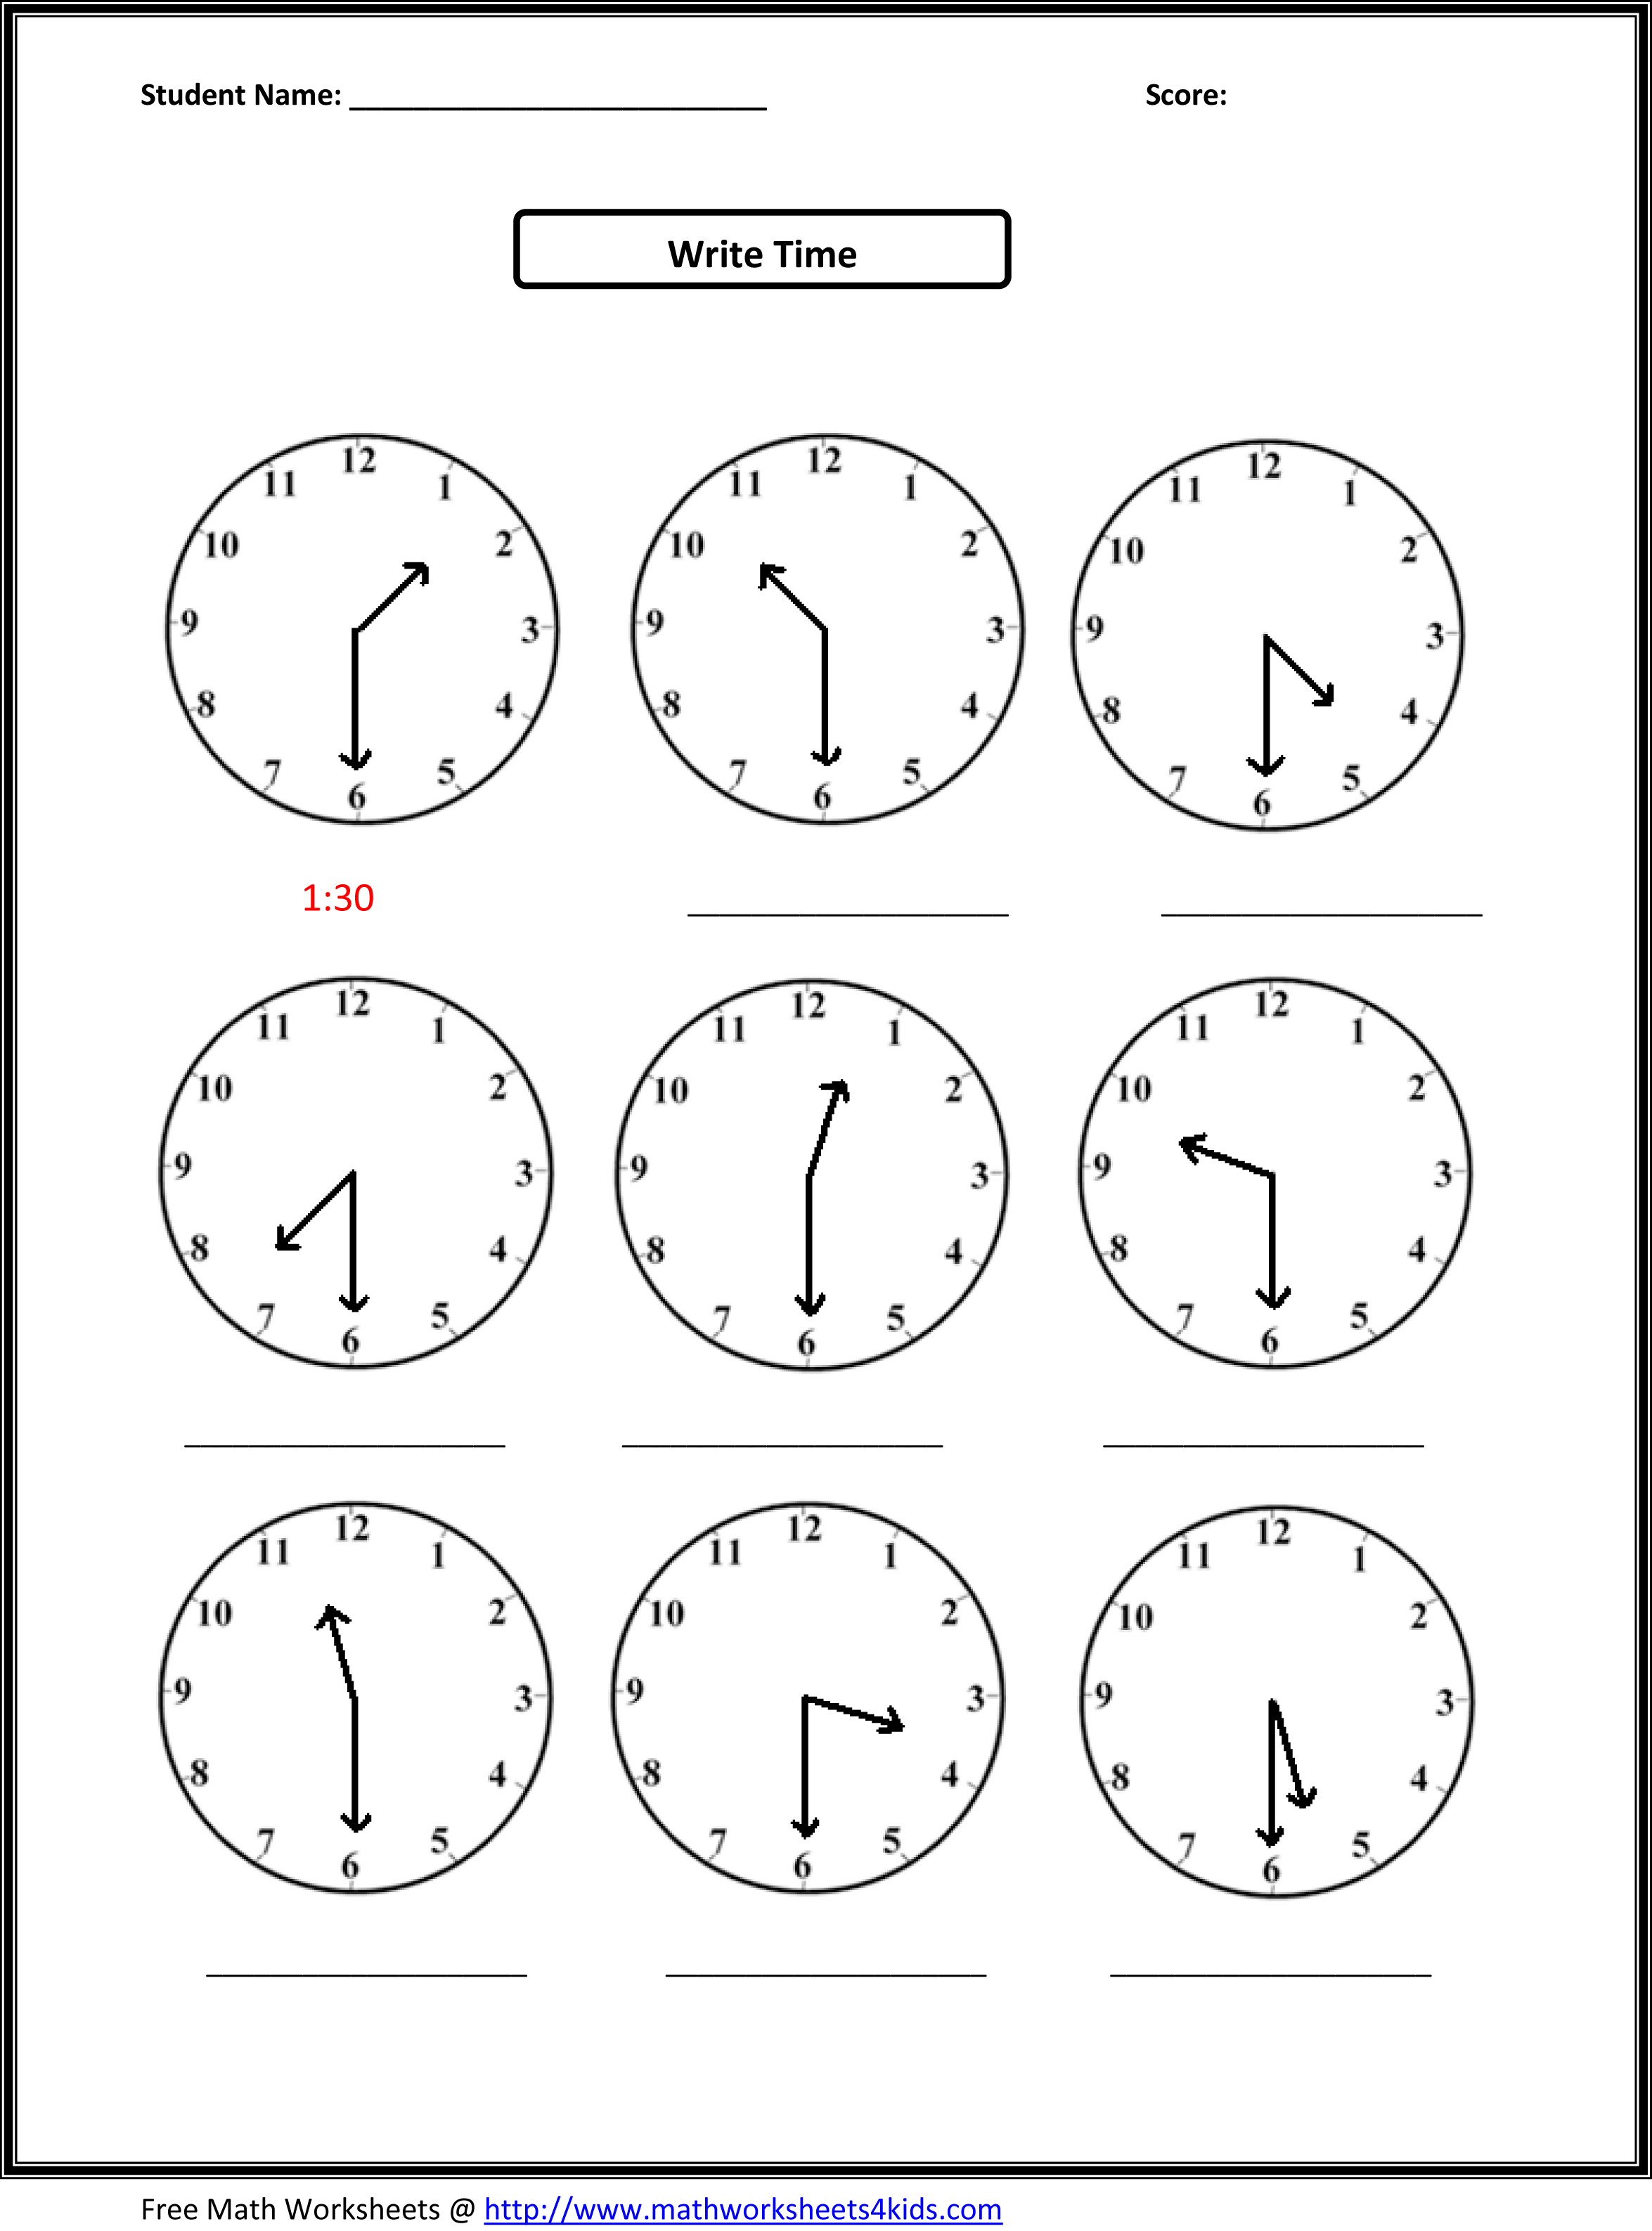 2nd Grade Perimeter Worksheet http://www.mathworksheets4kids.com/activities/2nd-grade.html